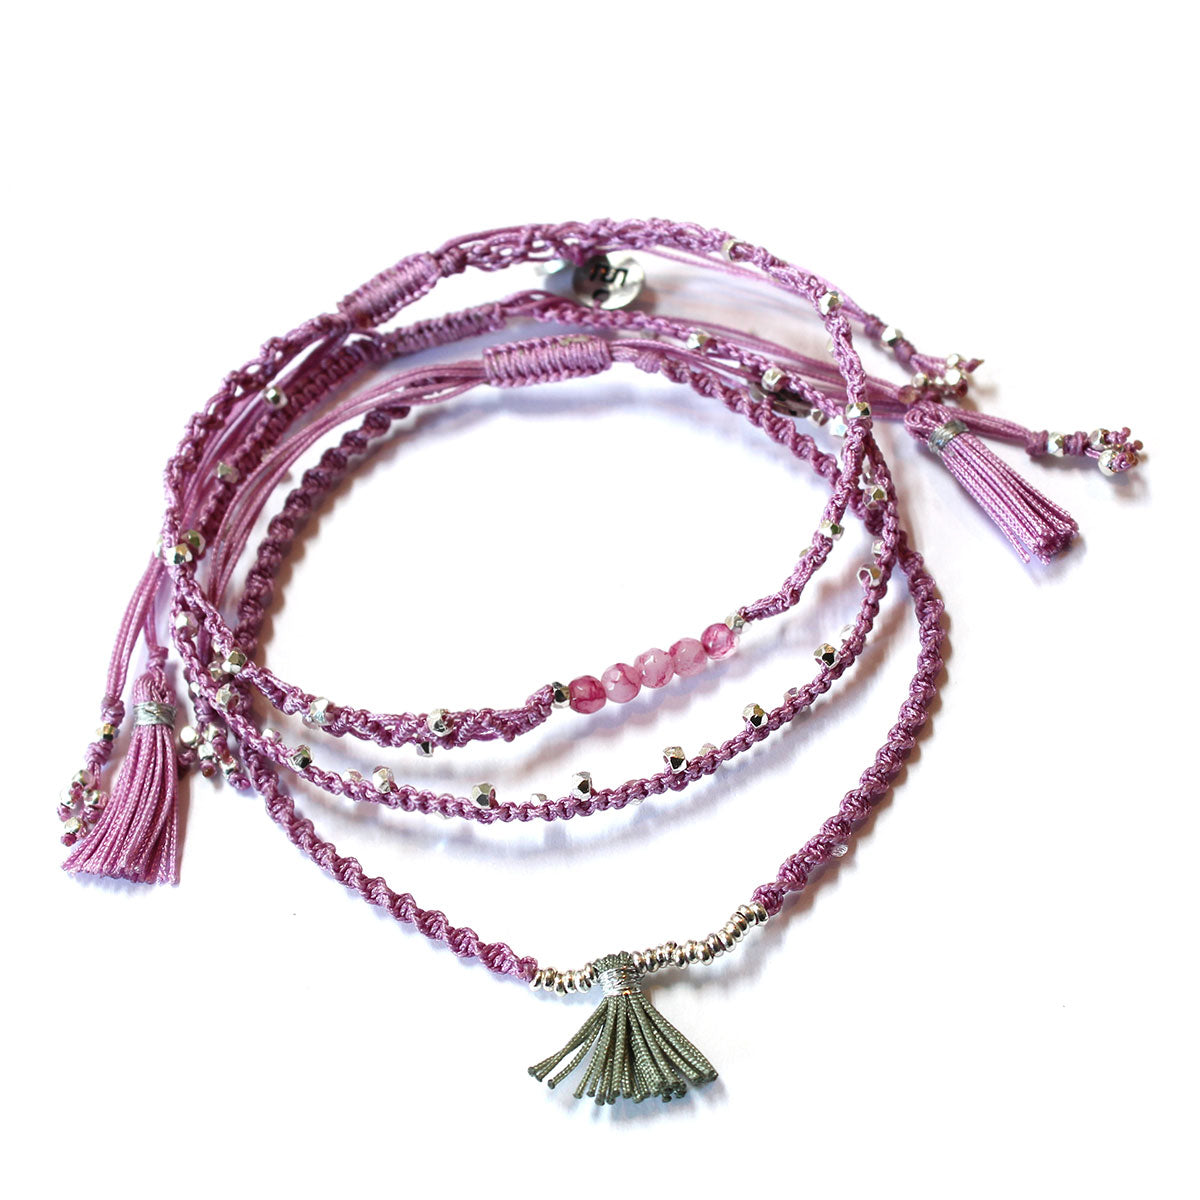 Wakami - 3 Bracelets Set - Light Purple